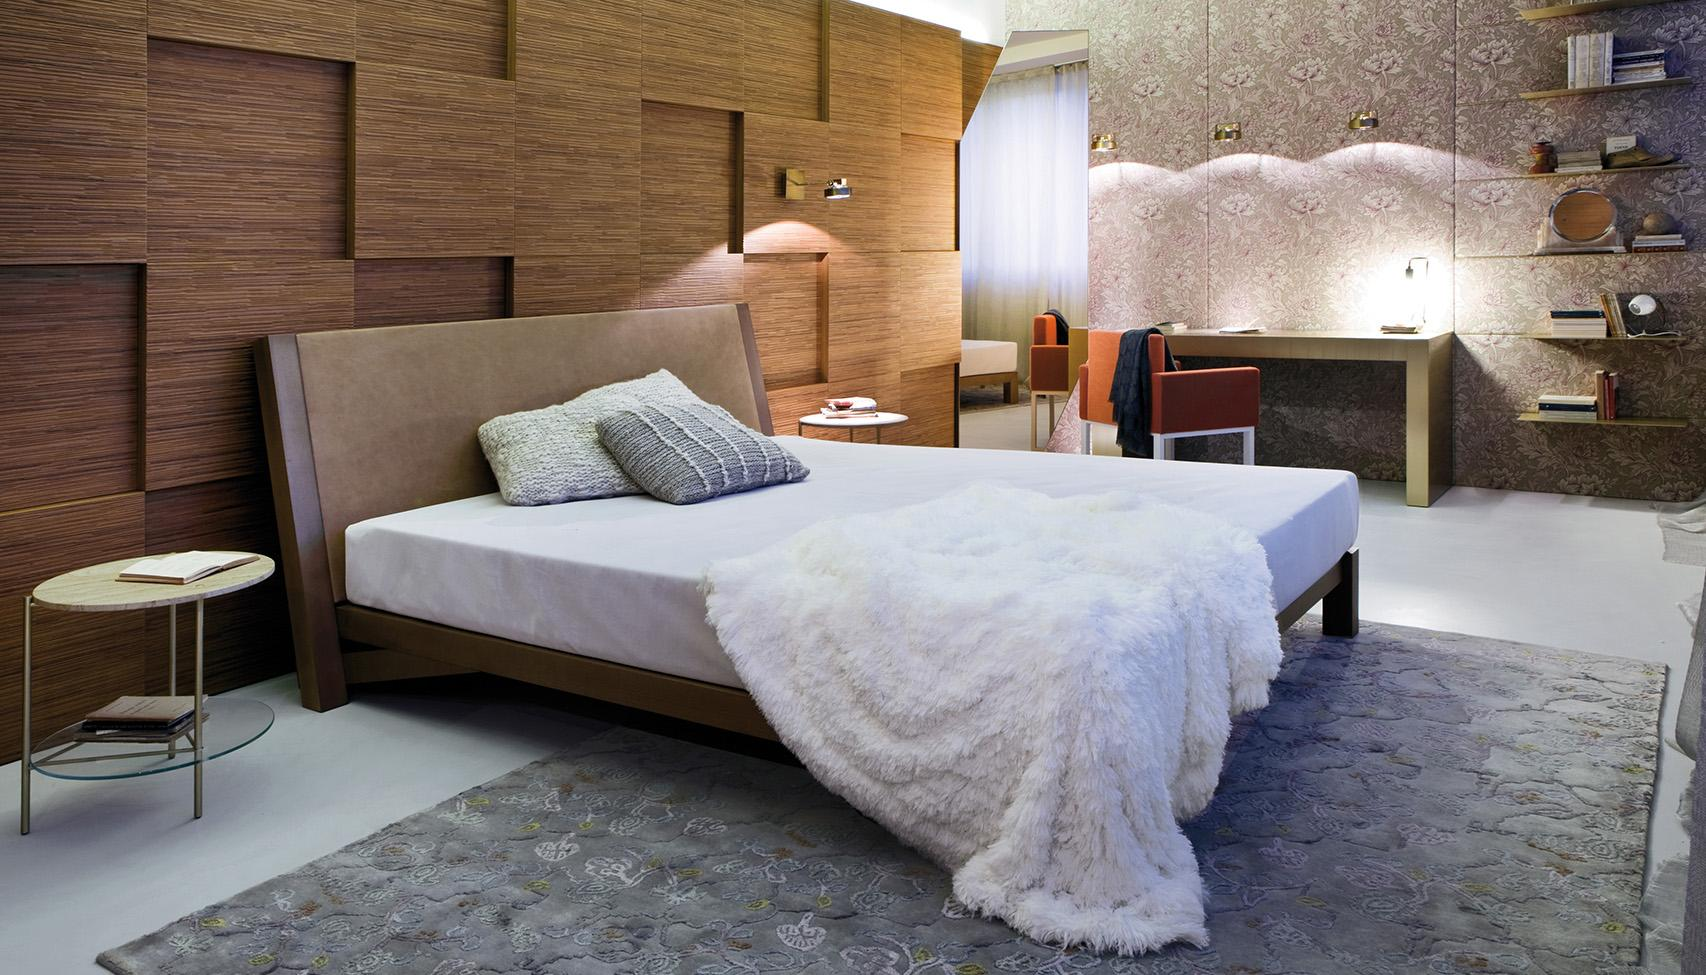 Laurameroni luxury modern integrated acoustic wall panels for a bespoke artisanal interior design and decor and acoustic comfort